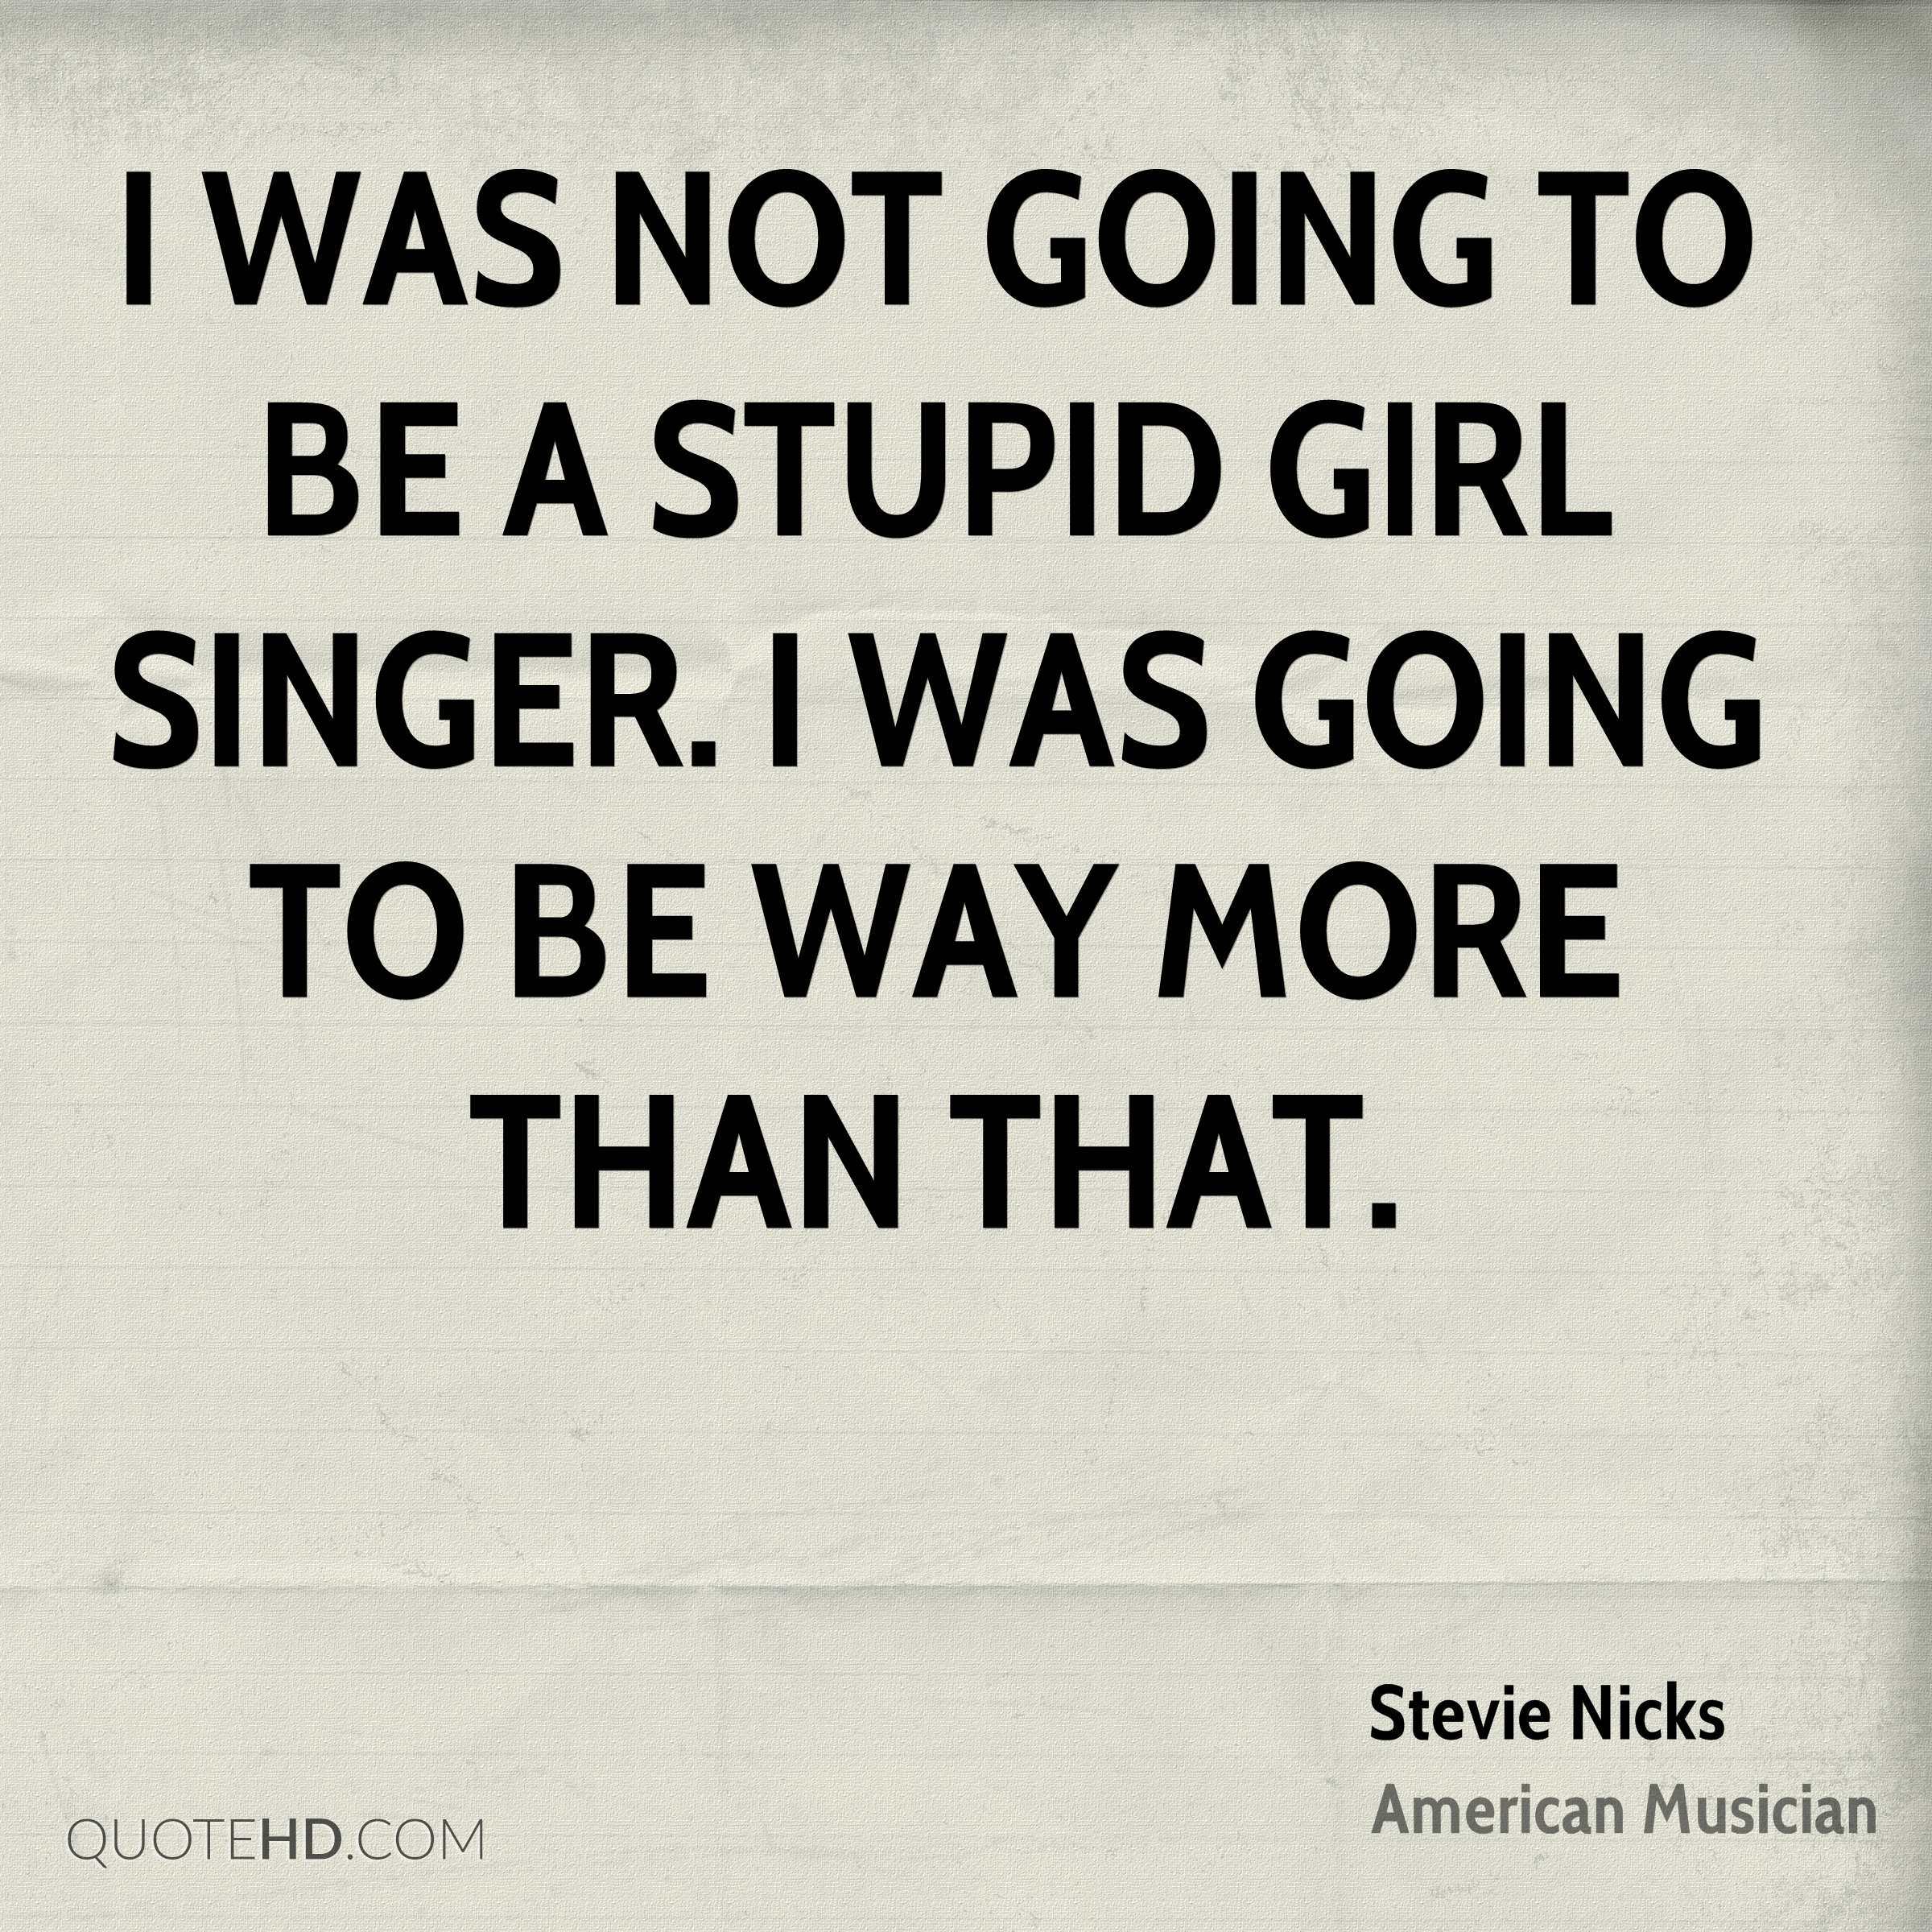 I was not going to be a stupid girl singer. I was going to be way more than that.